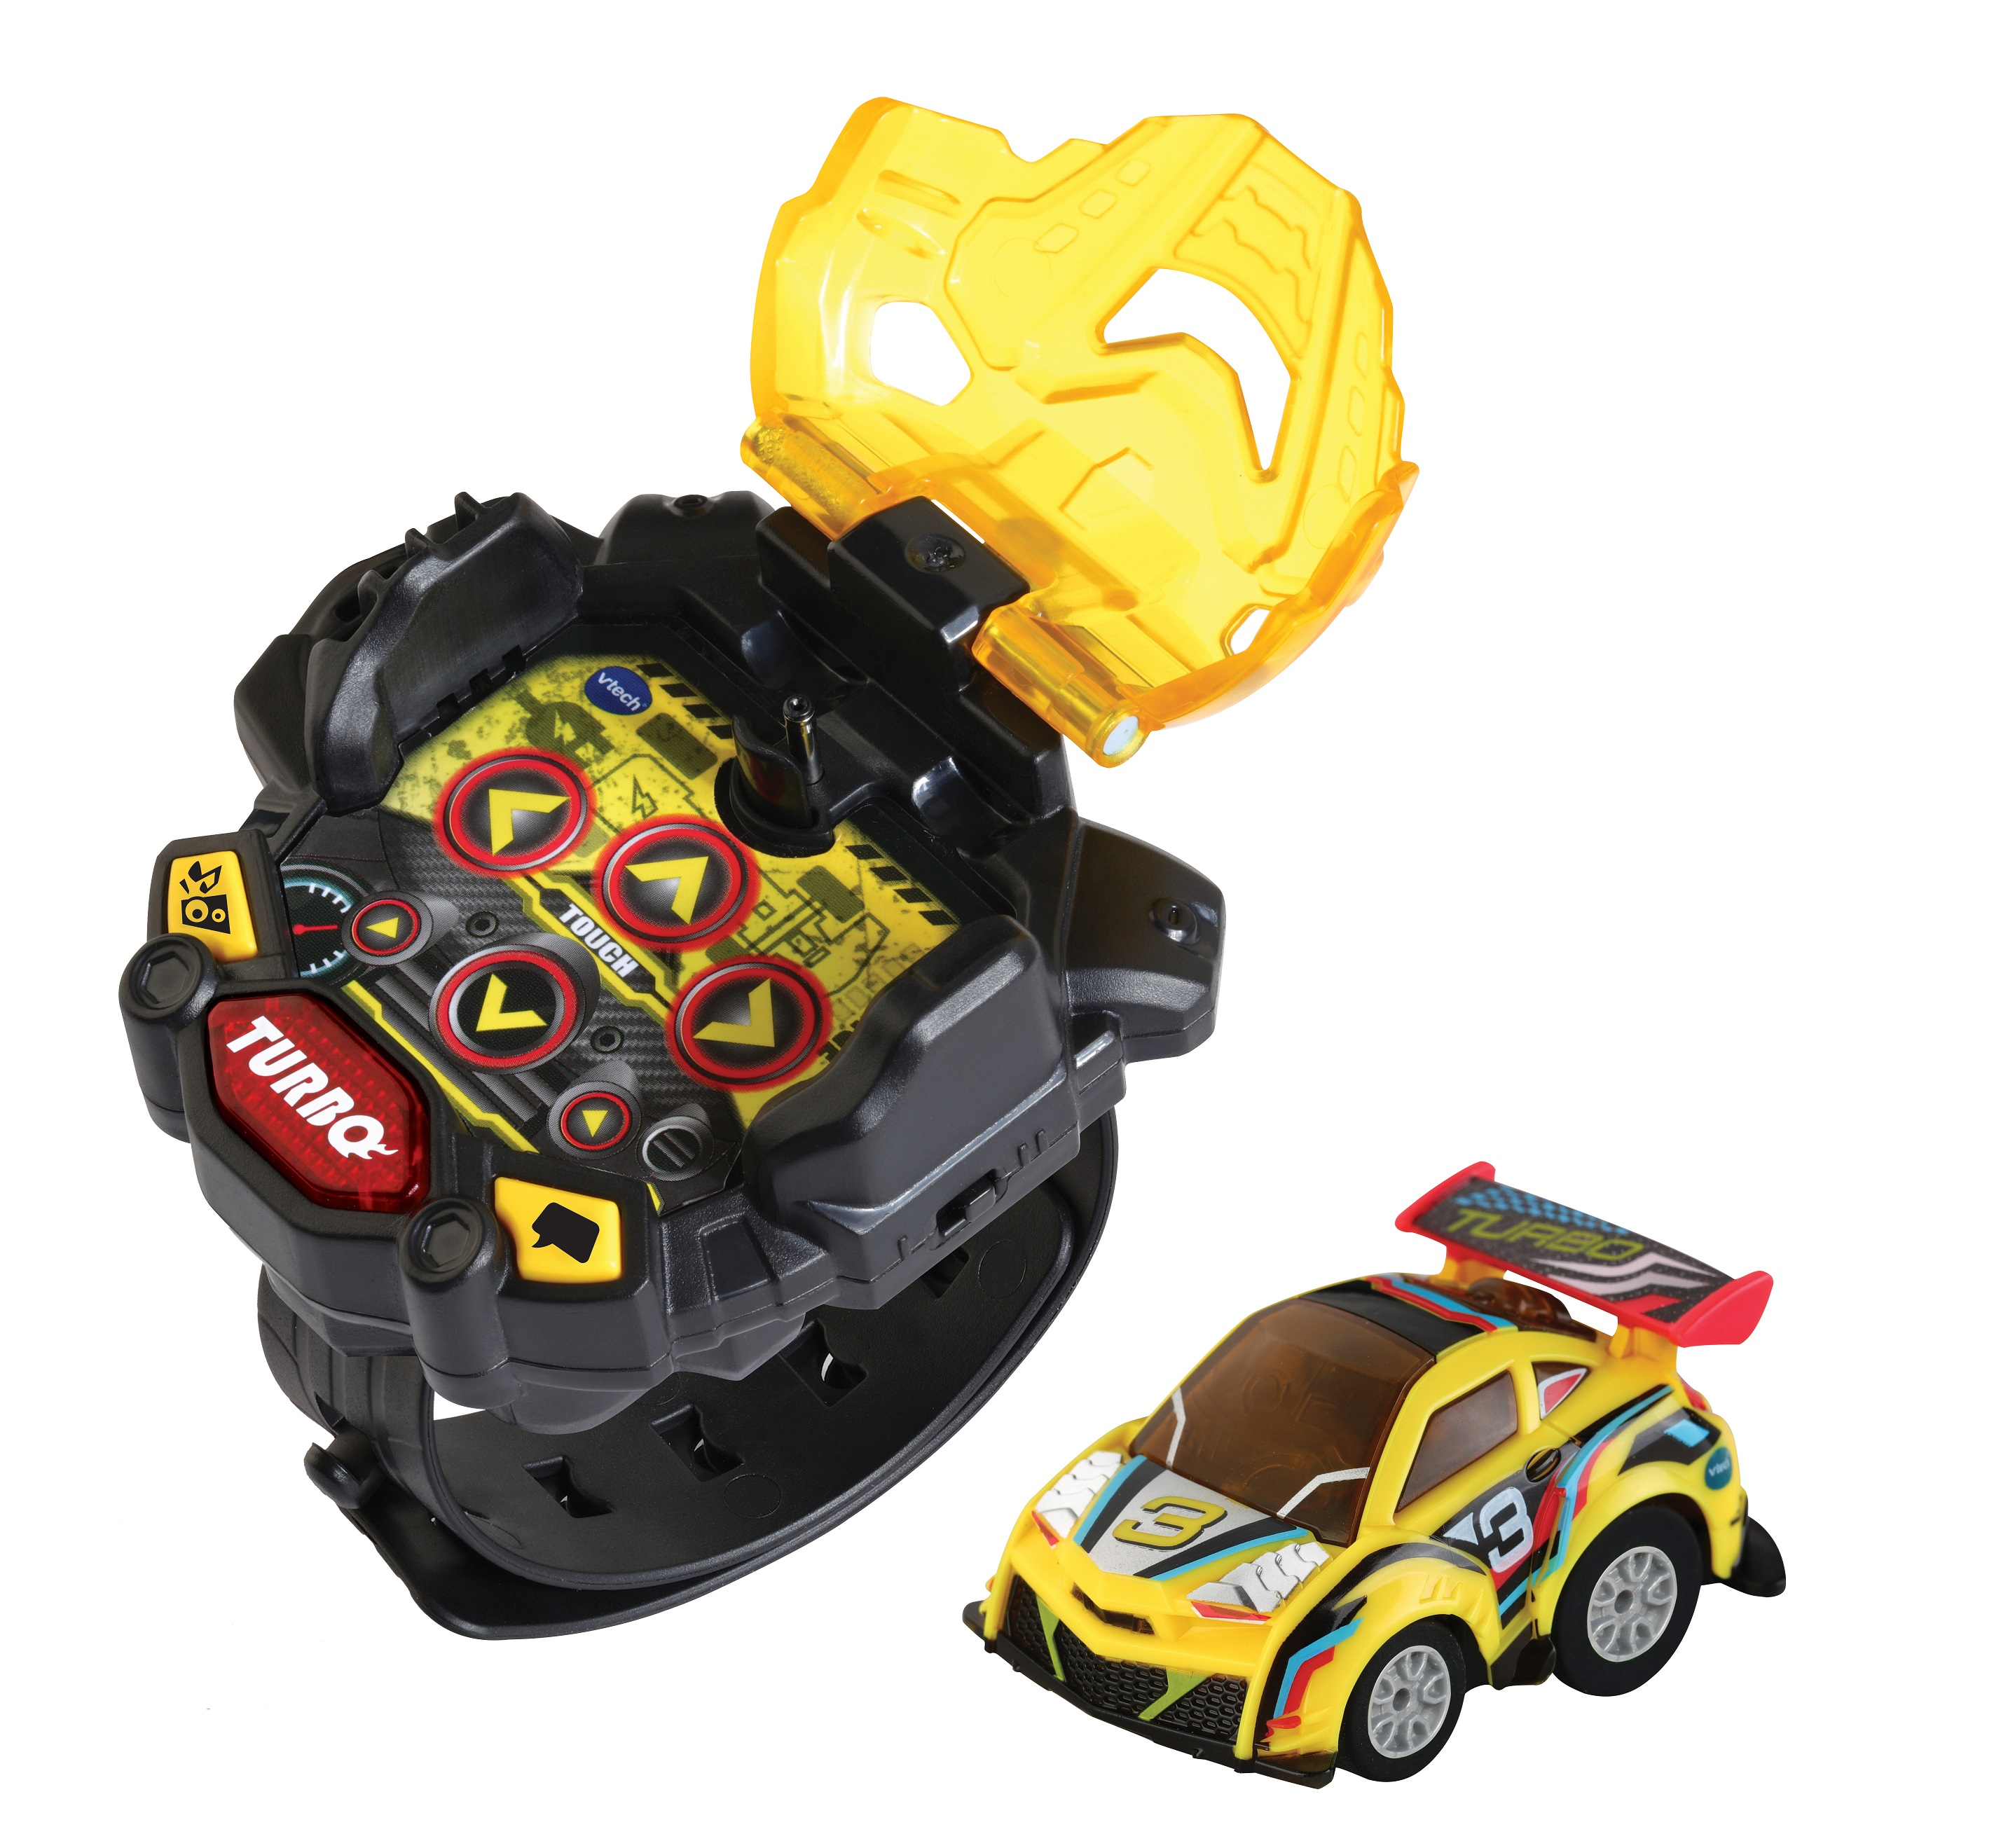 VTECH: TURBO FORCE RACERS, worth £17.99